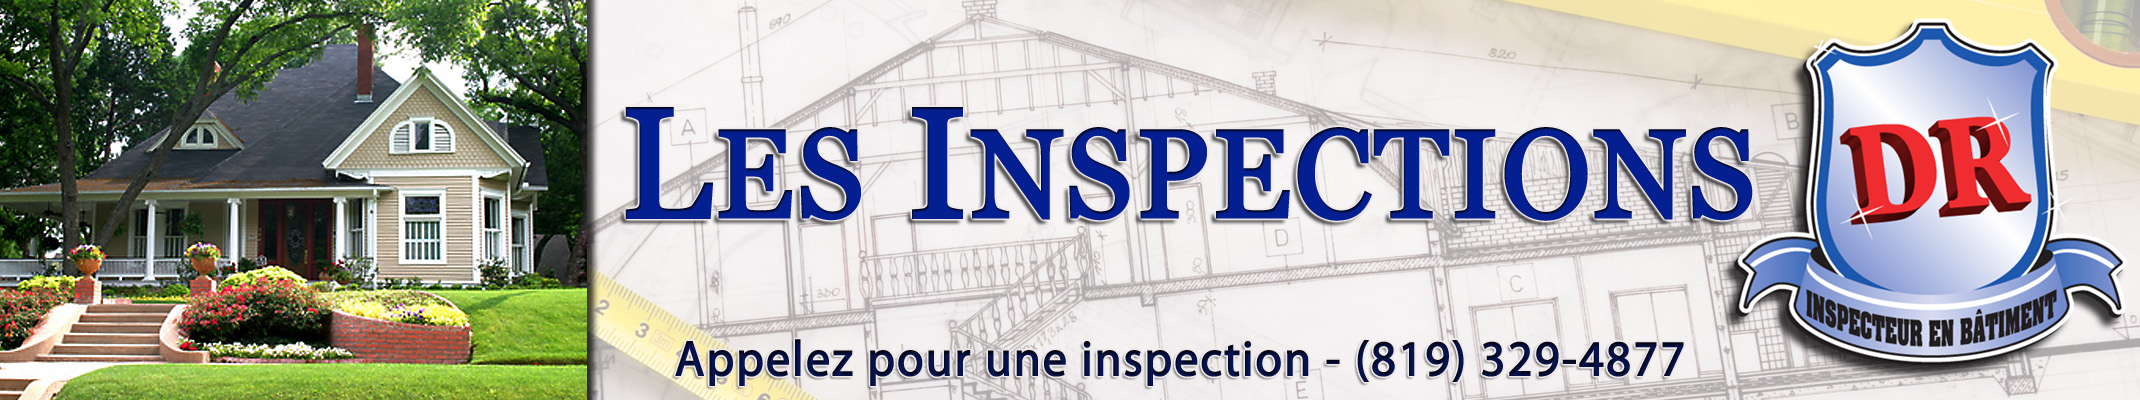 DR Home Inspections-Banner